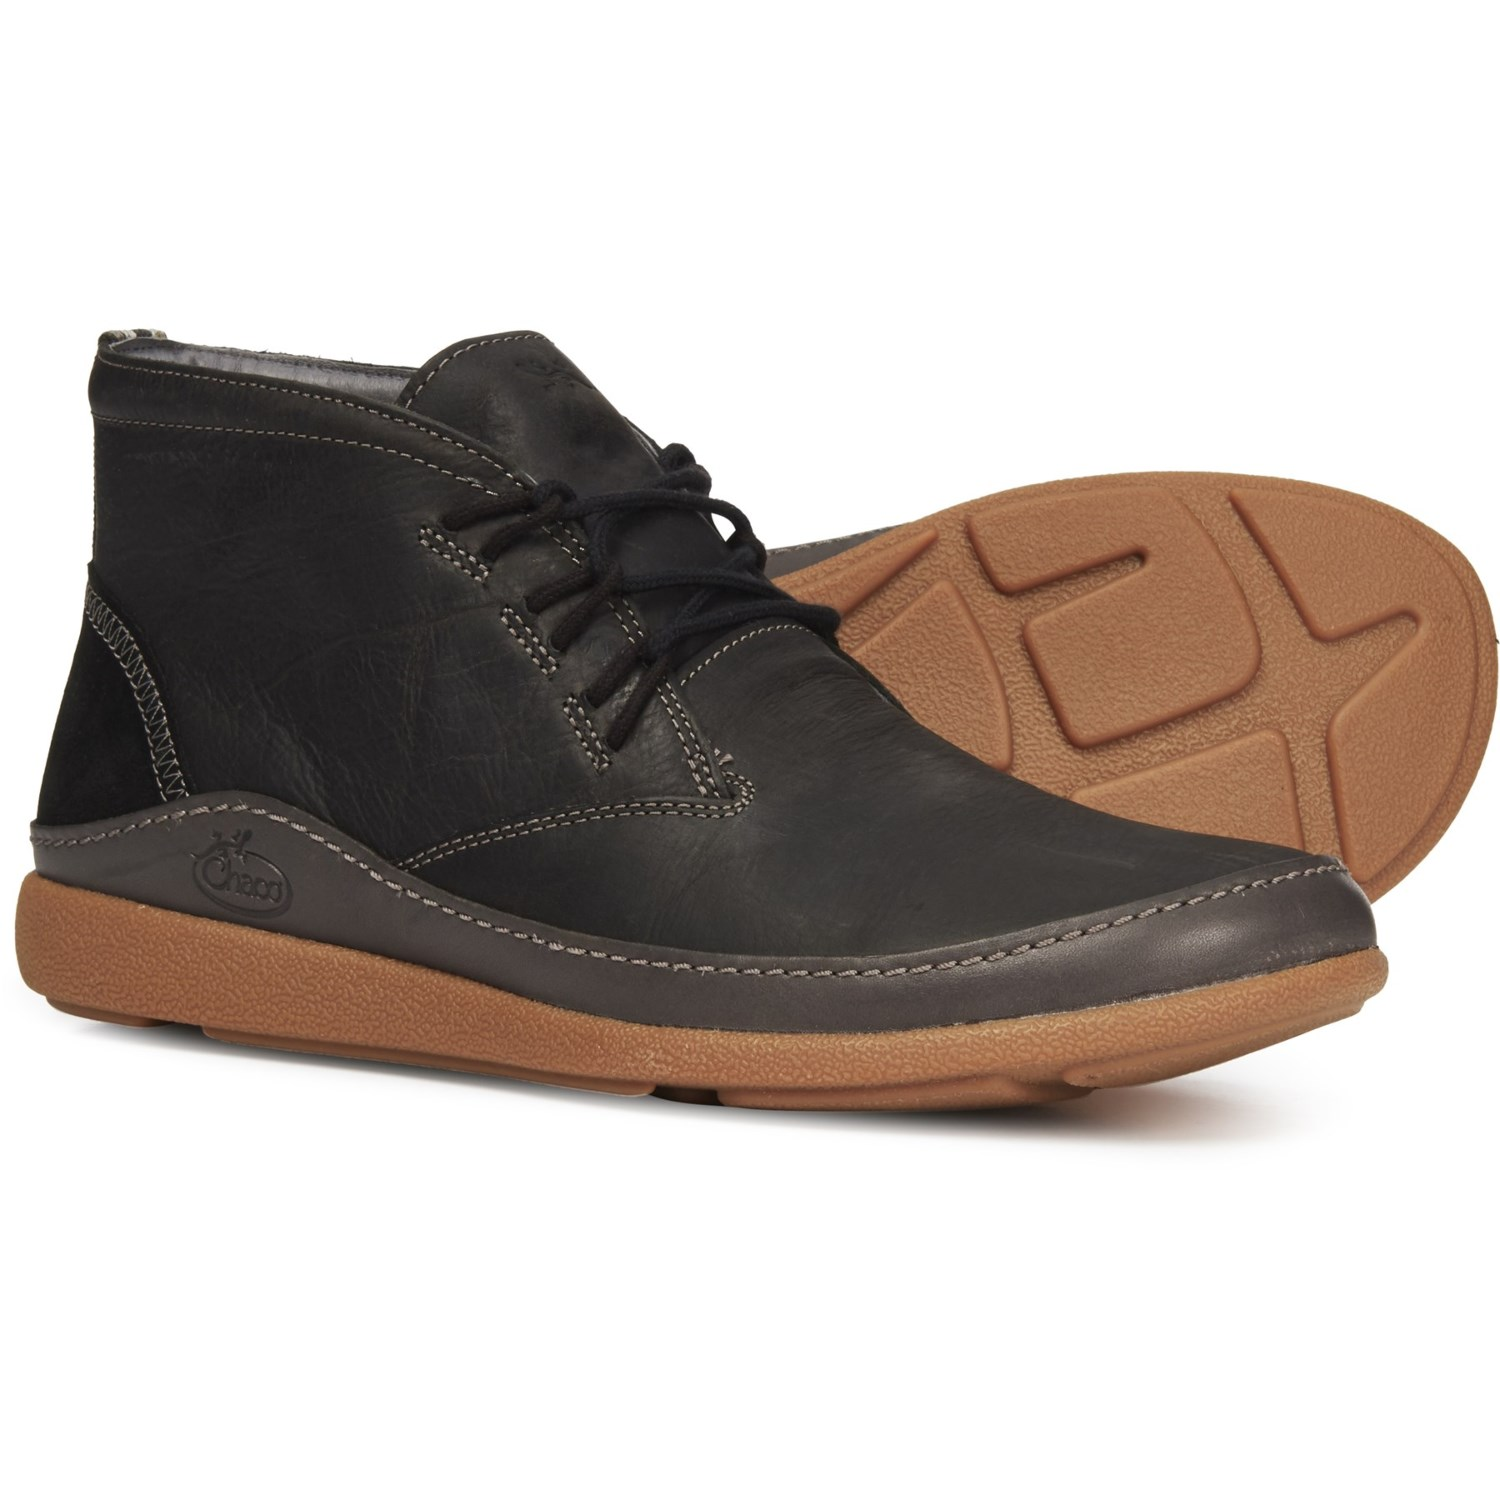 Chaco Montrose Chukka Boots (For Men